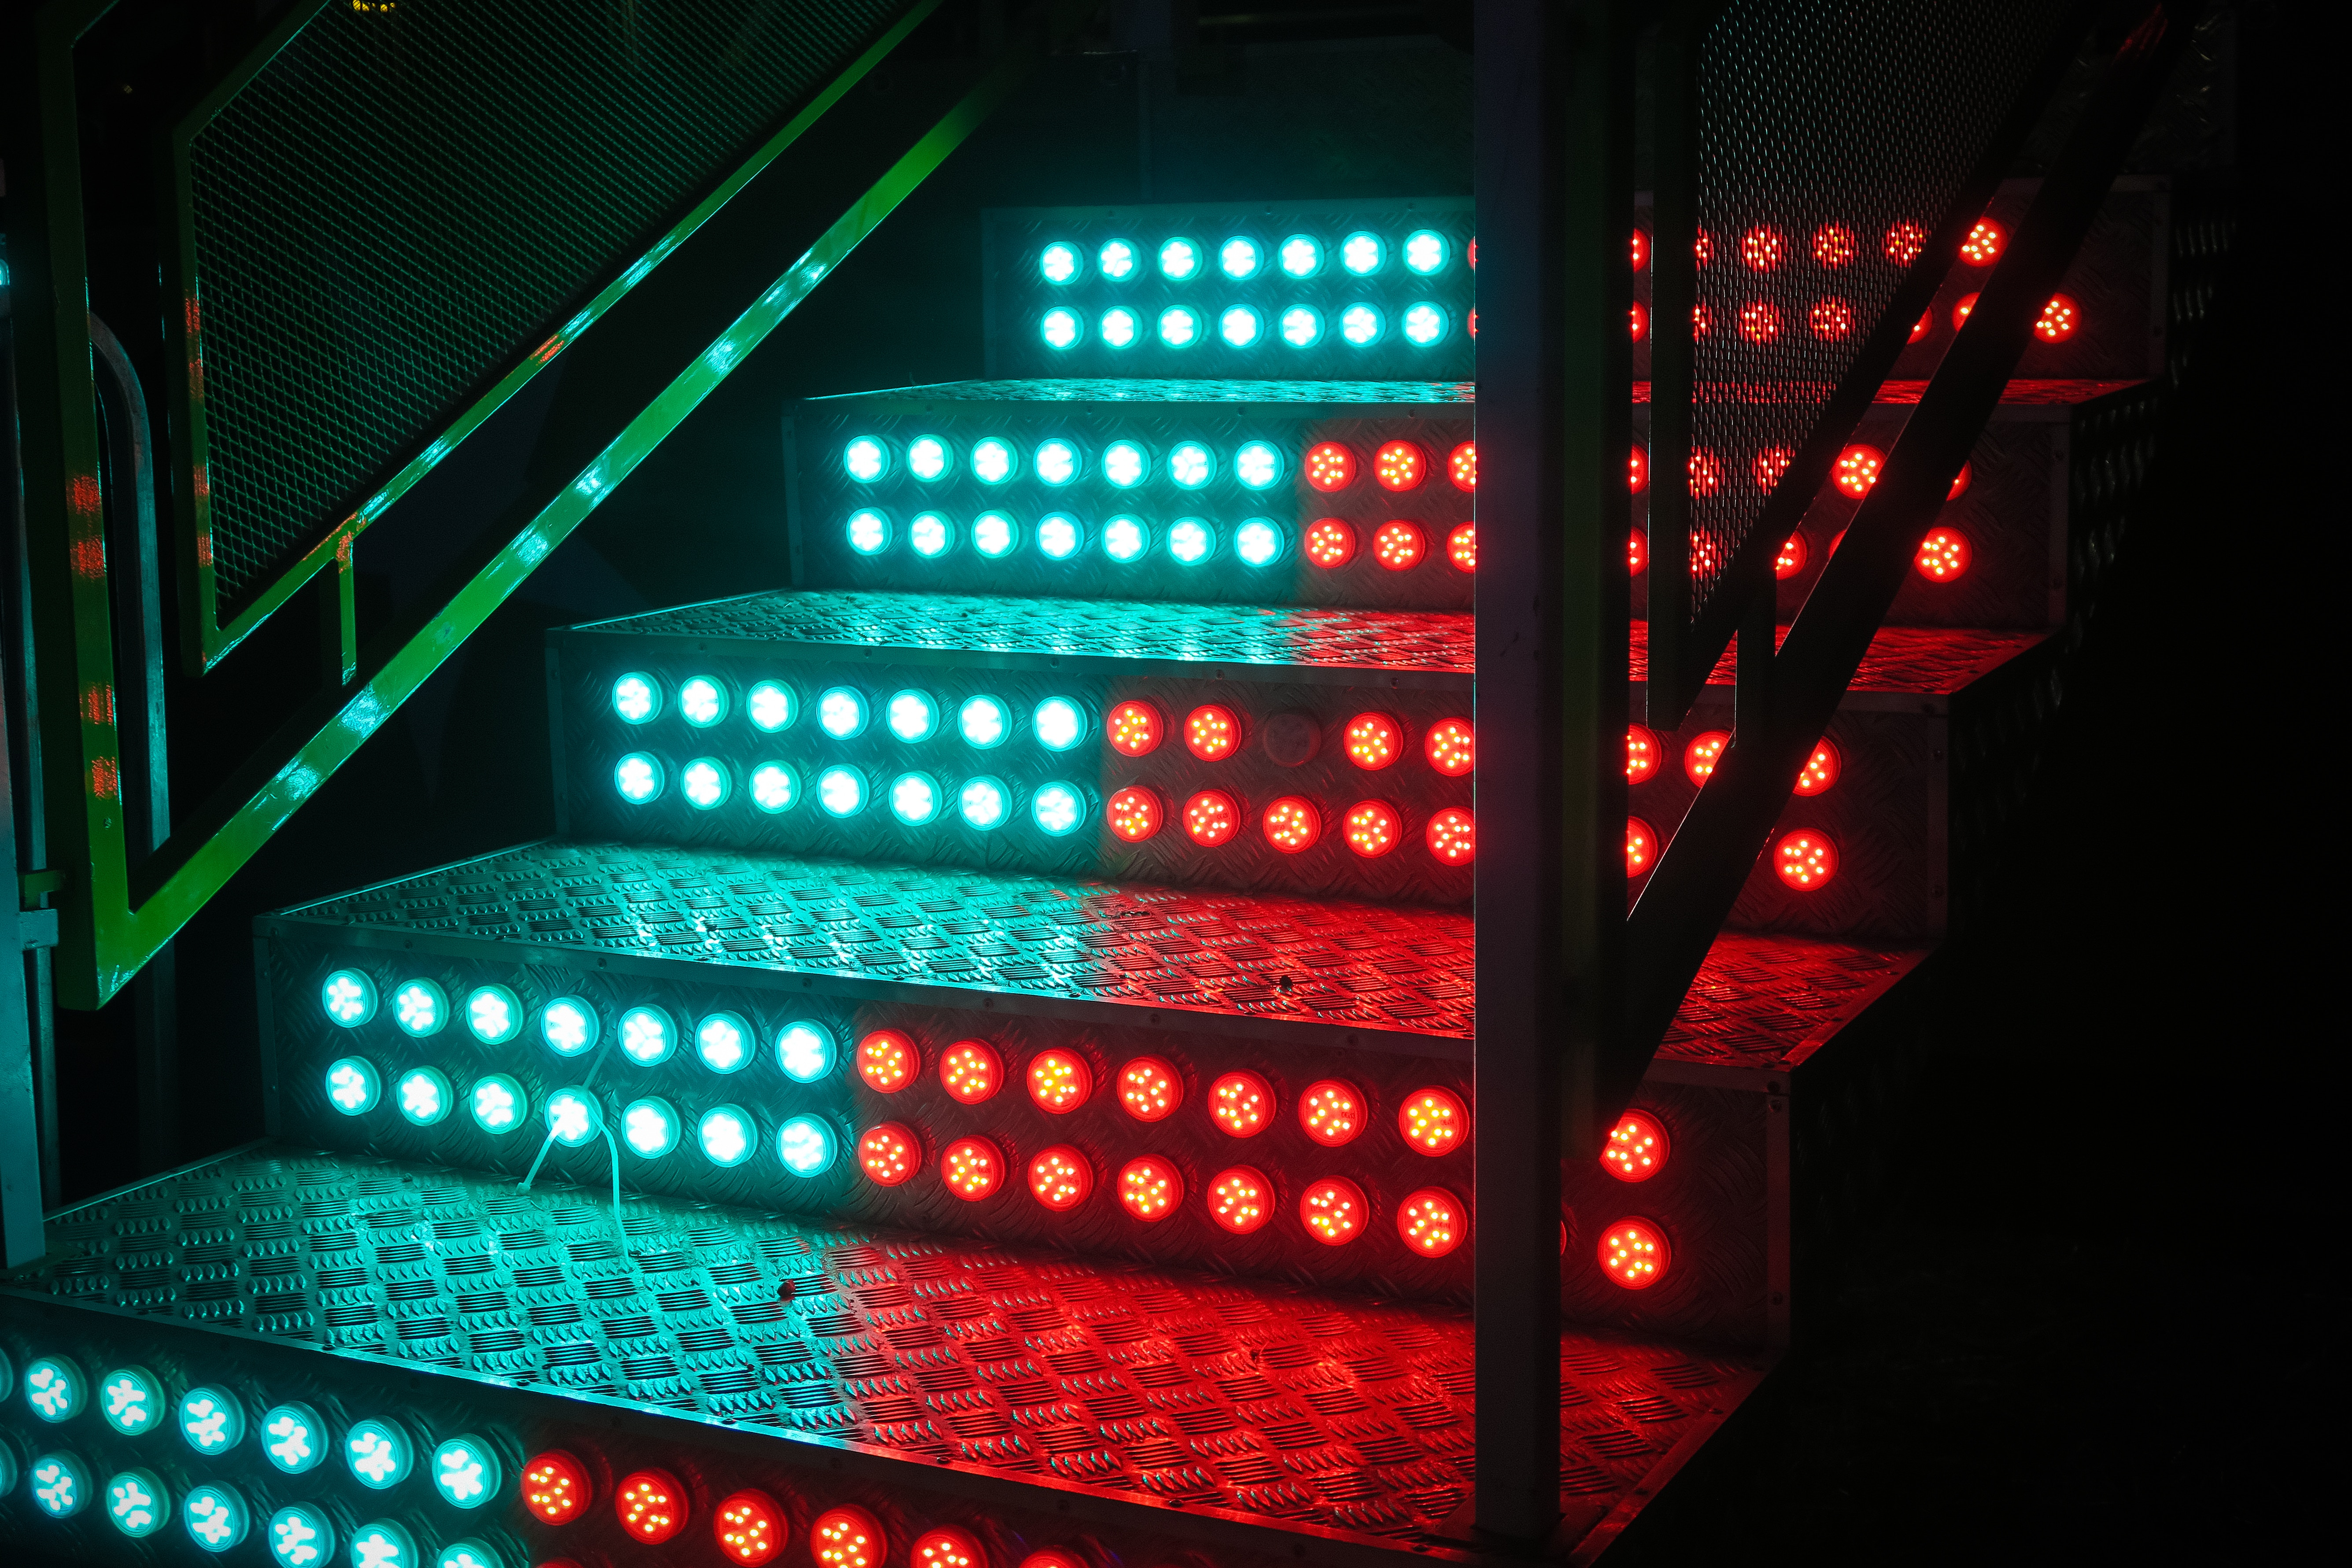 136827 download wallpaper Miscellanea, Miscellaneous, Neon, Backlight, Illumination, Stairs, Ladder, Steps, Light Bulbs screensavers and pictures for free